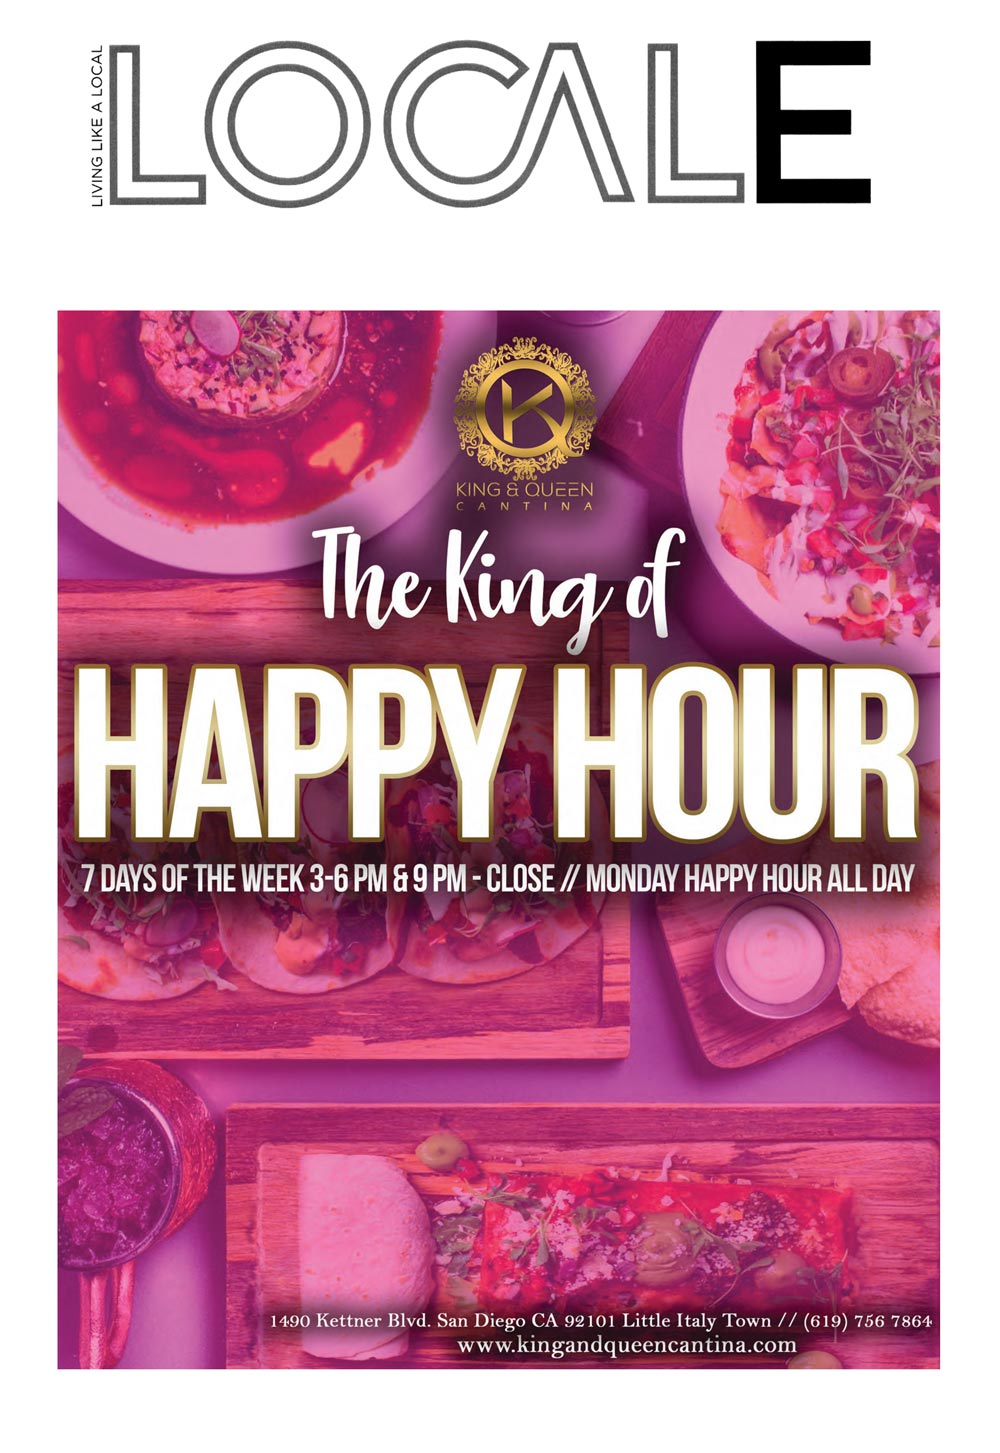 King and Queen Cantina happy hour poster featured in Locale